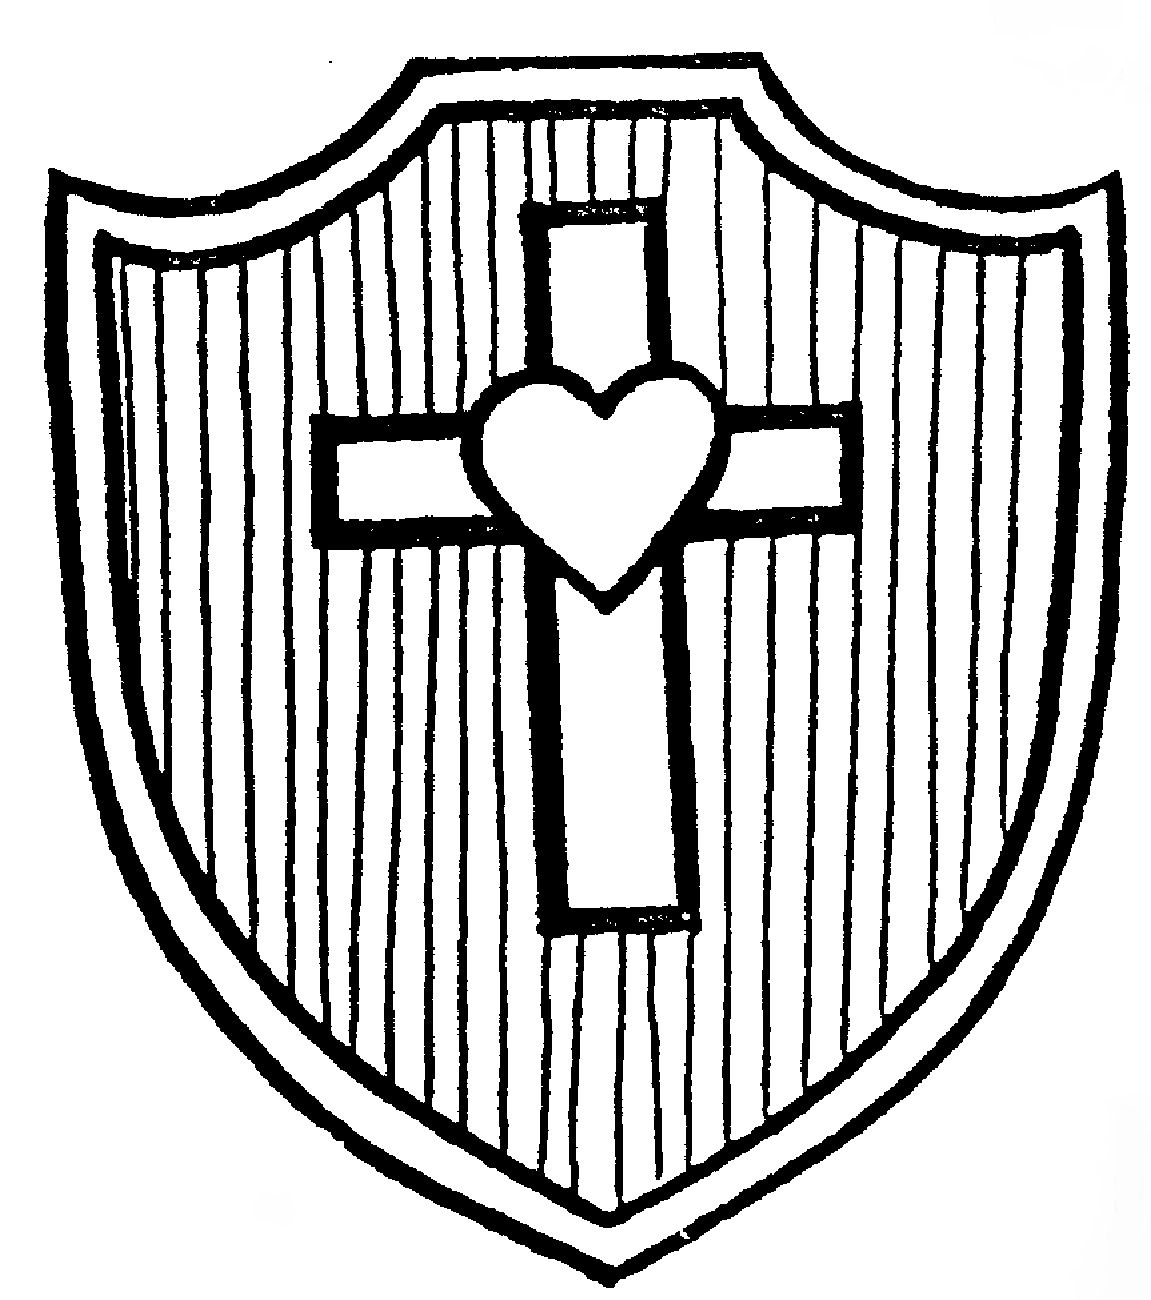 Coloring pages 1950s - Shields Of Faith Shield Of Faith Coloring Page Coloring Pages Pictures Imagixs